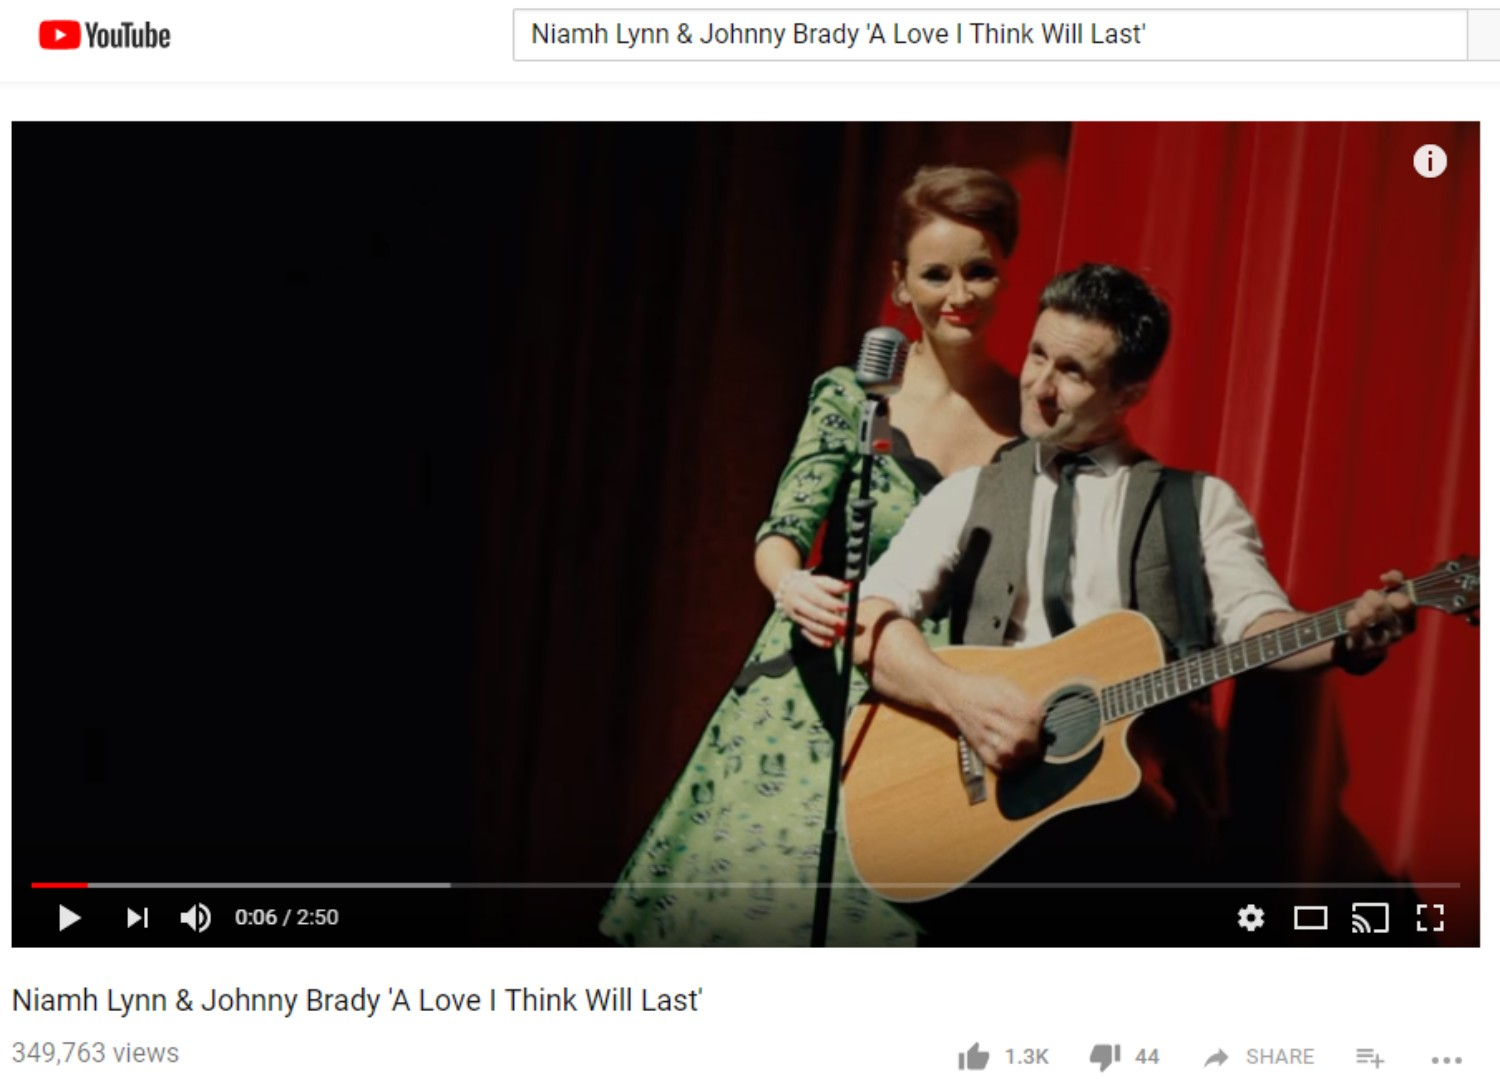 Niamh Lynn & Johnny Brady 'A Love I Thin